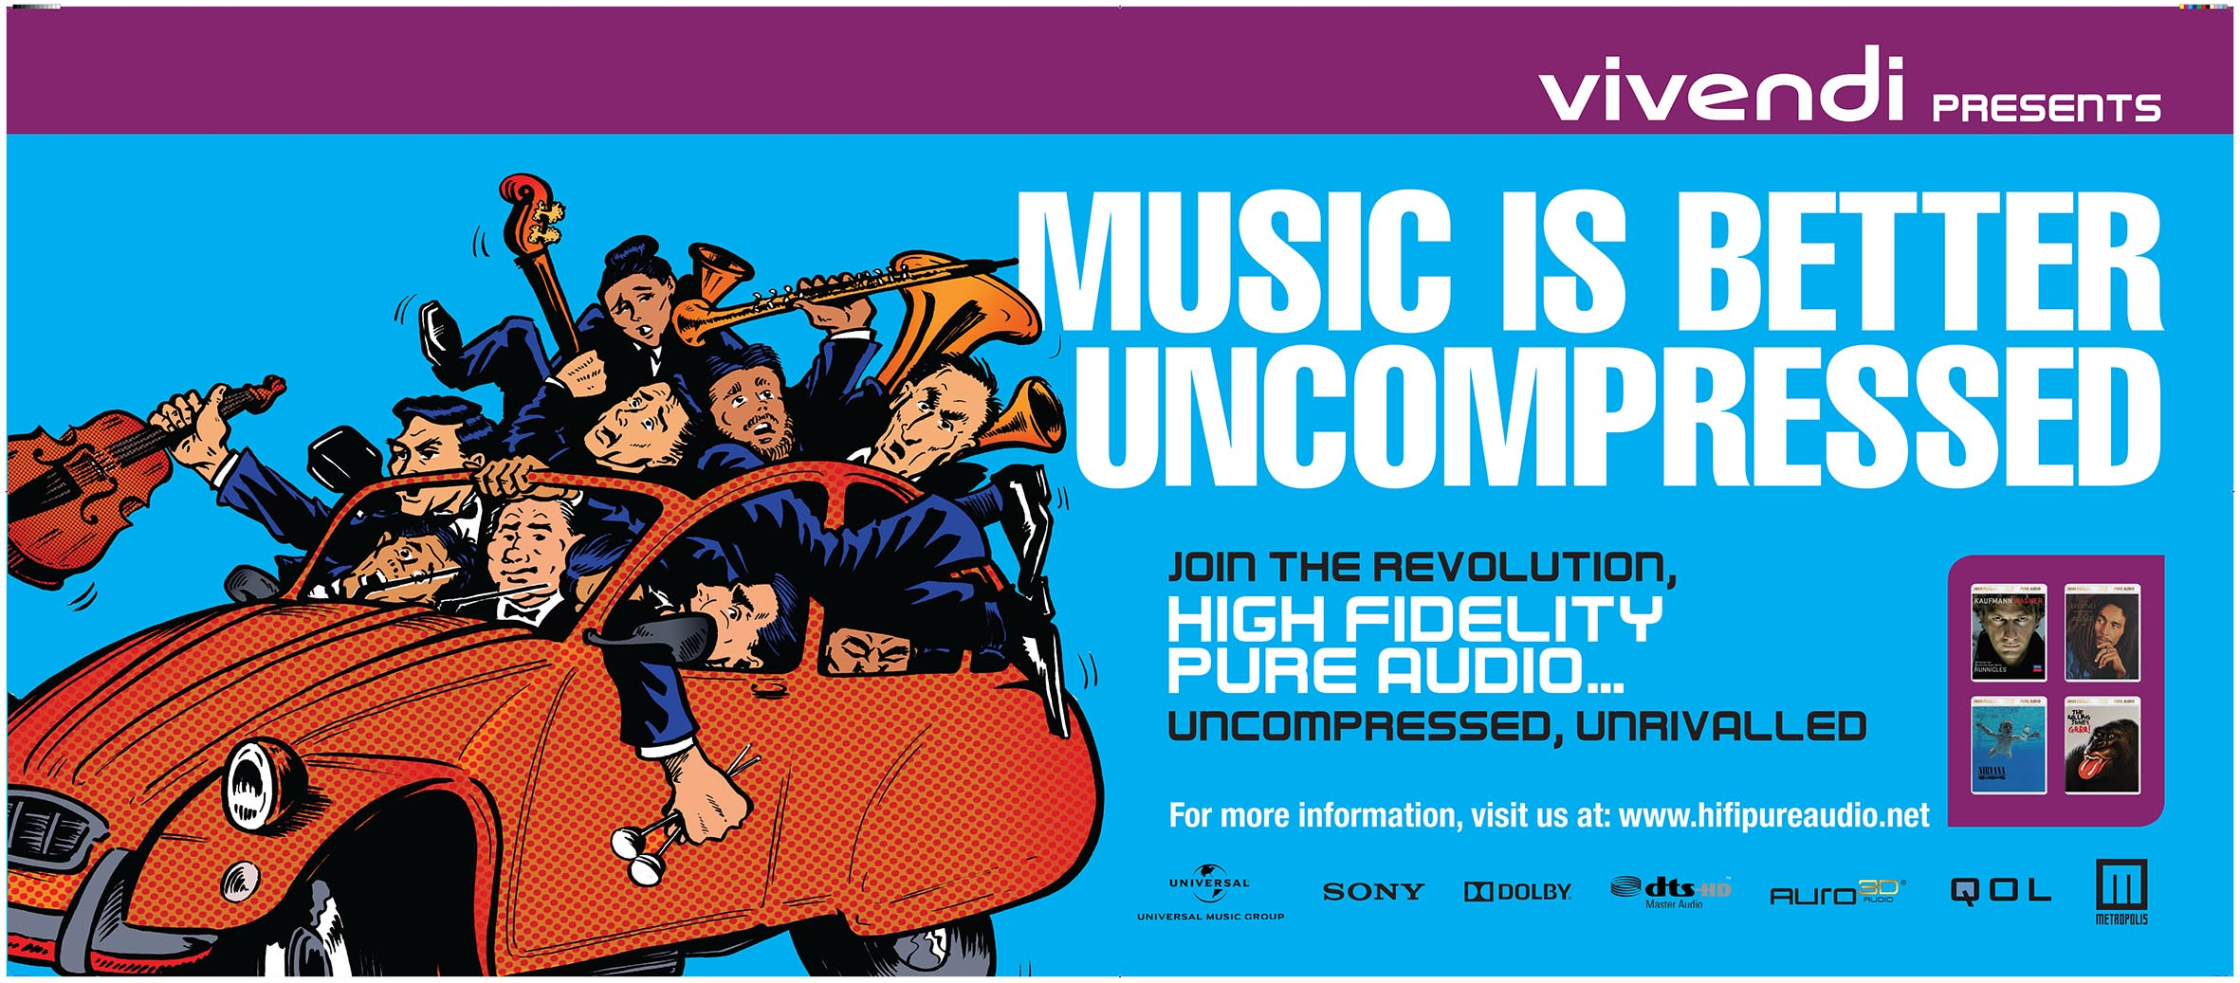 Music Is Better Uncompressed Vivendi UMusic